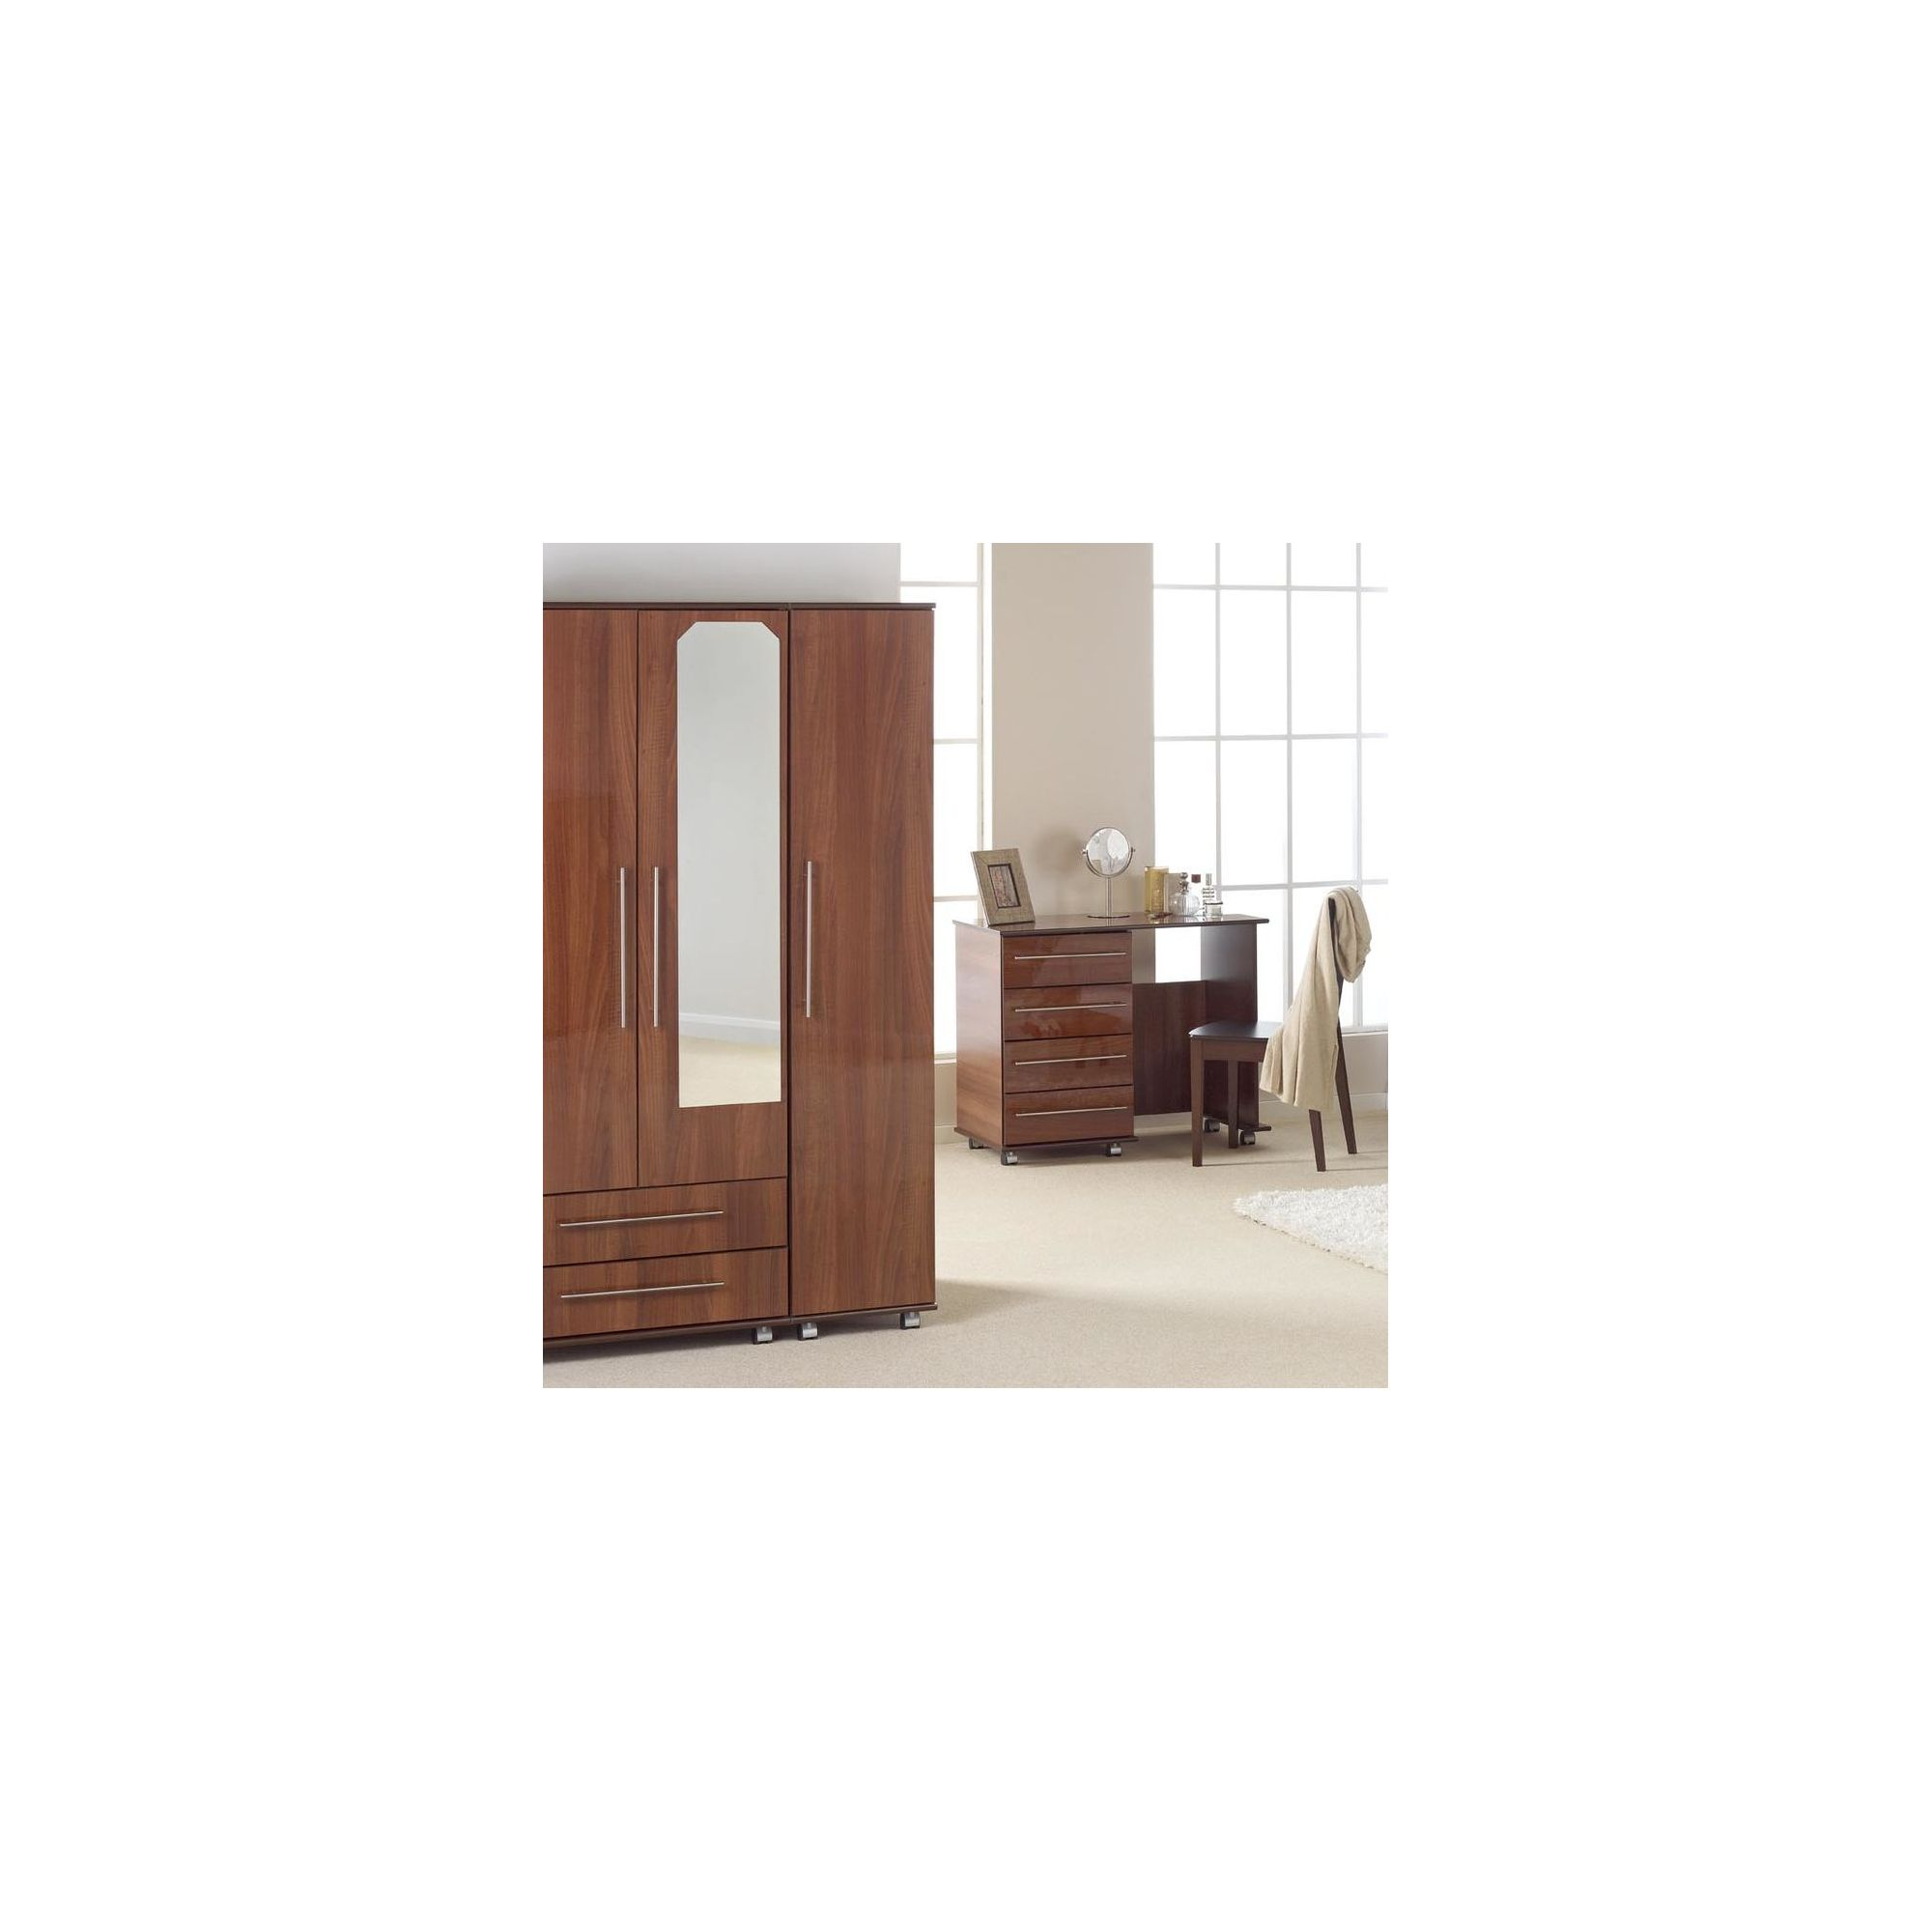 Ideal Furniture New York Triple Wardrobe with Two Drawers and Mirror - Beech at Tesco Direct